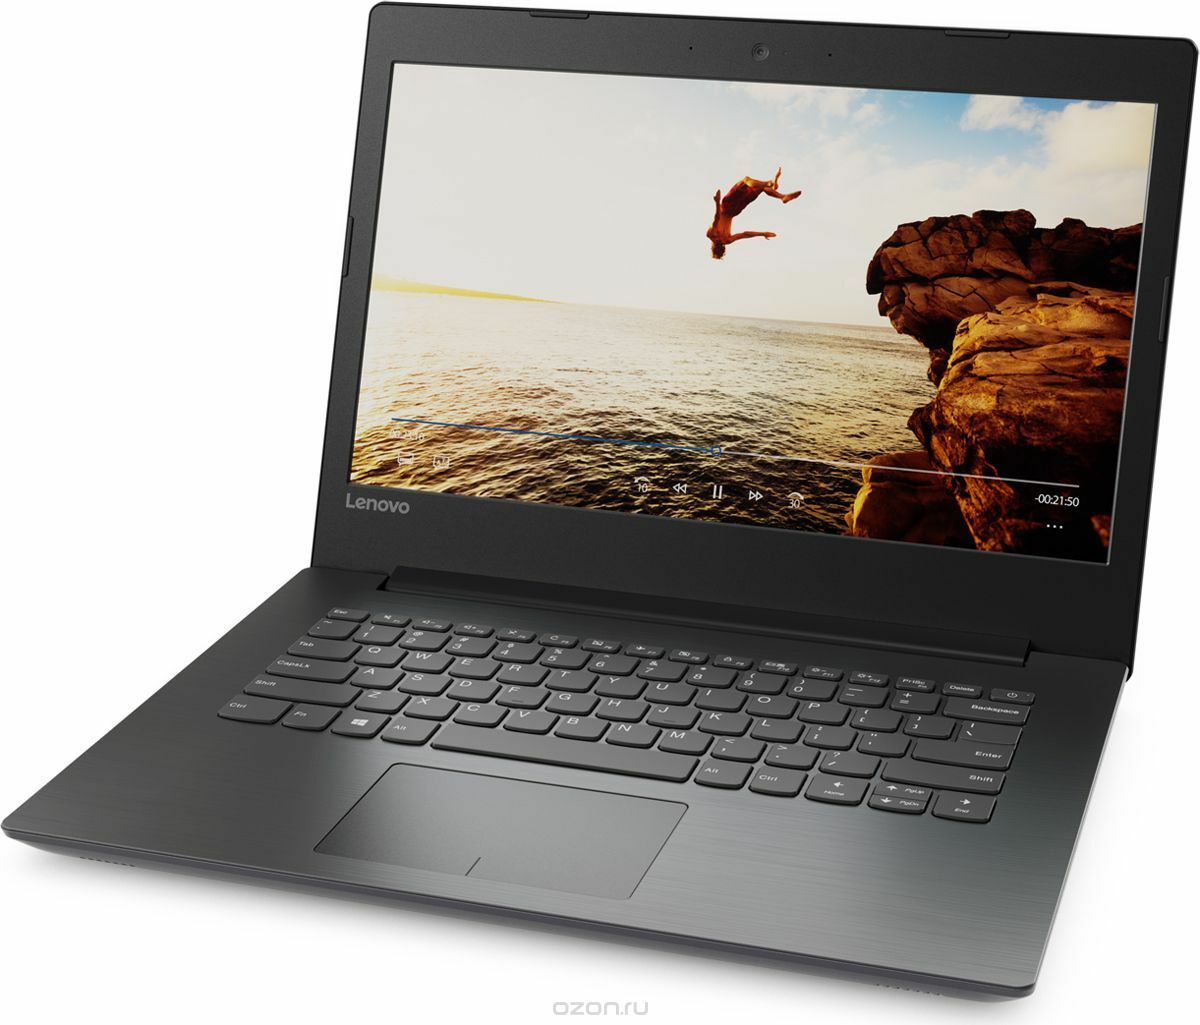 "Laptop Windows - Lenovo 320-14AST 14"" AMD A9-9420 3GHz 8GB 1TB HDD Laptop Windows 10 - Black"